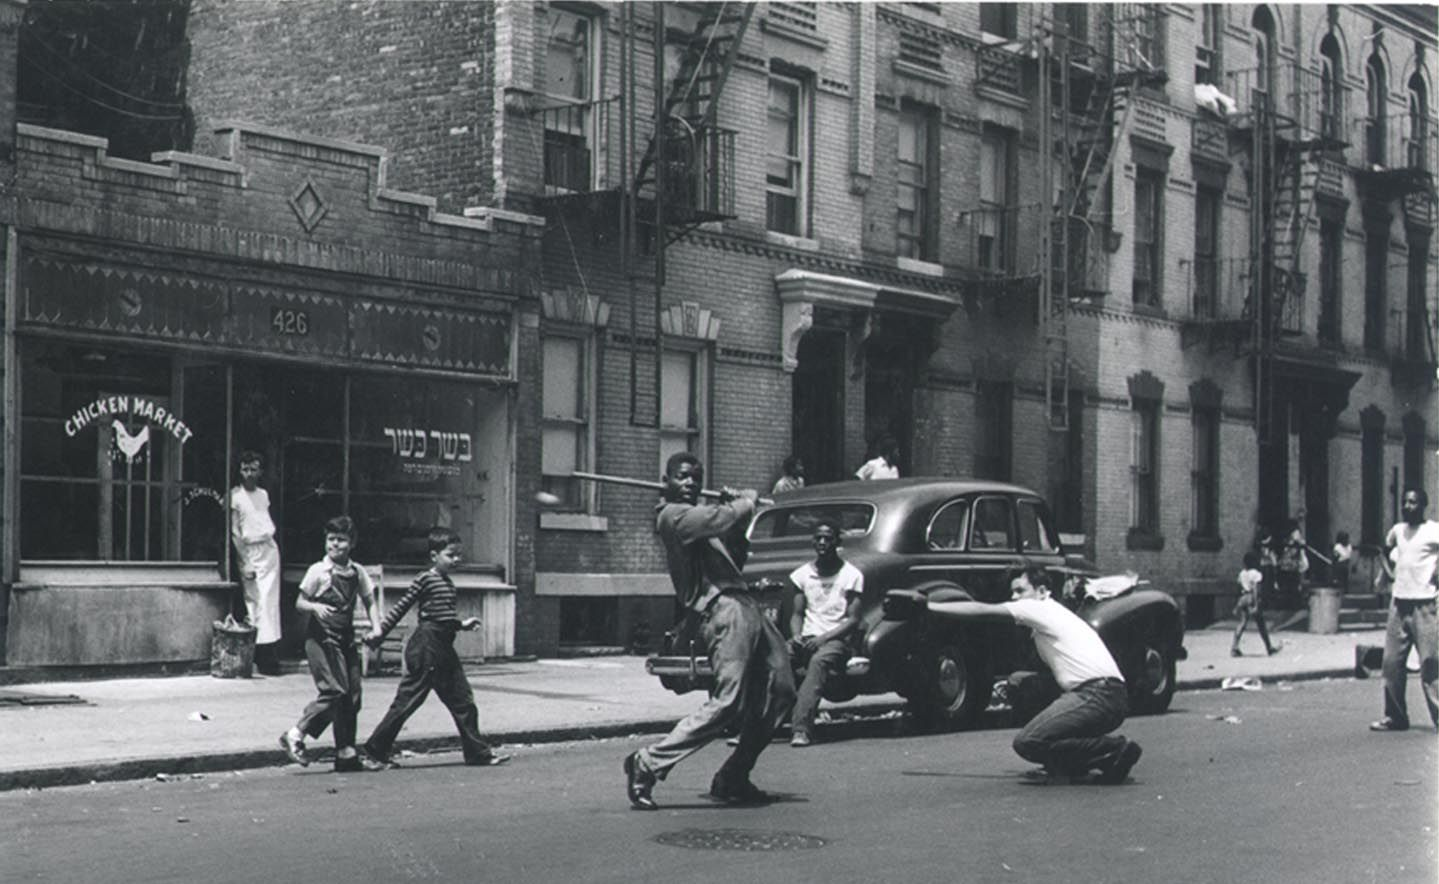 A game of Stickball is played. Brooklyn circa 1950s. | Retro ...